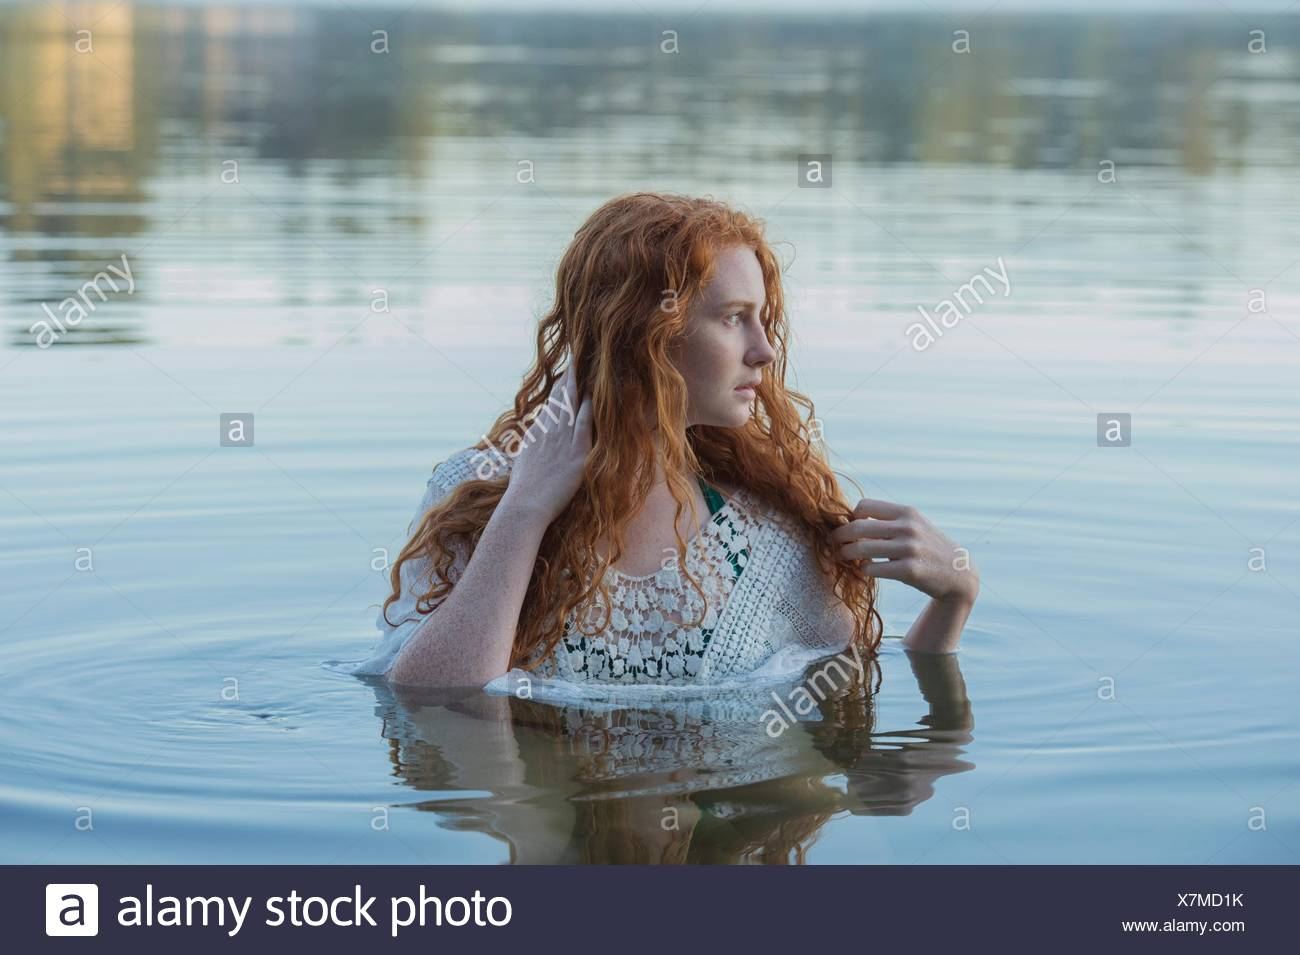 Head and shoulders of young woman with long red hair in lake looking sideways - Stock Image